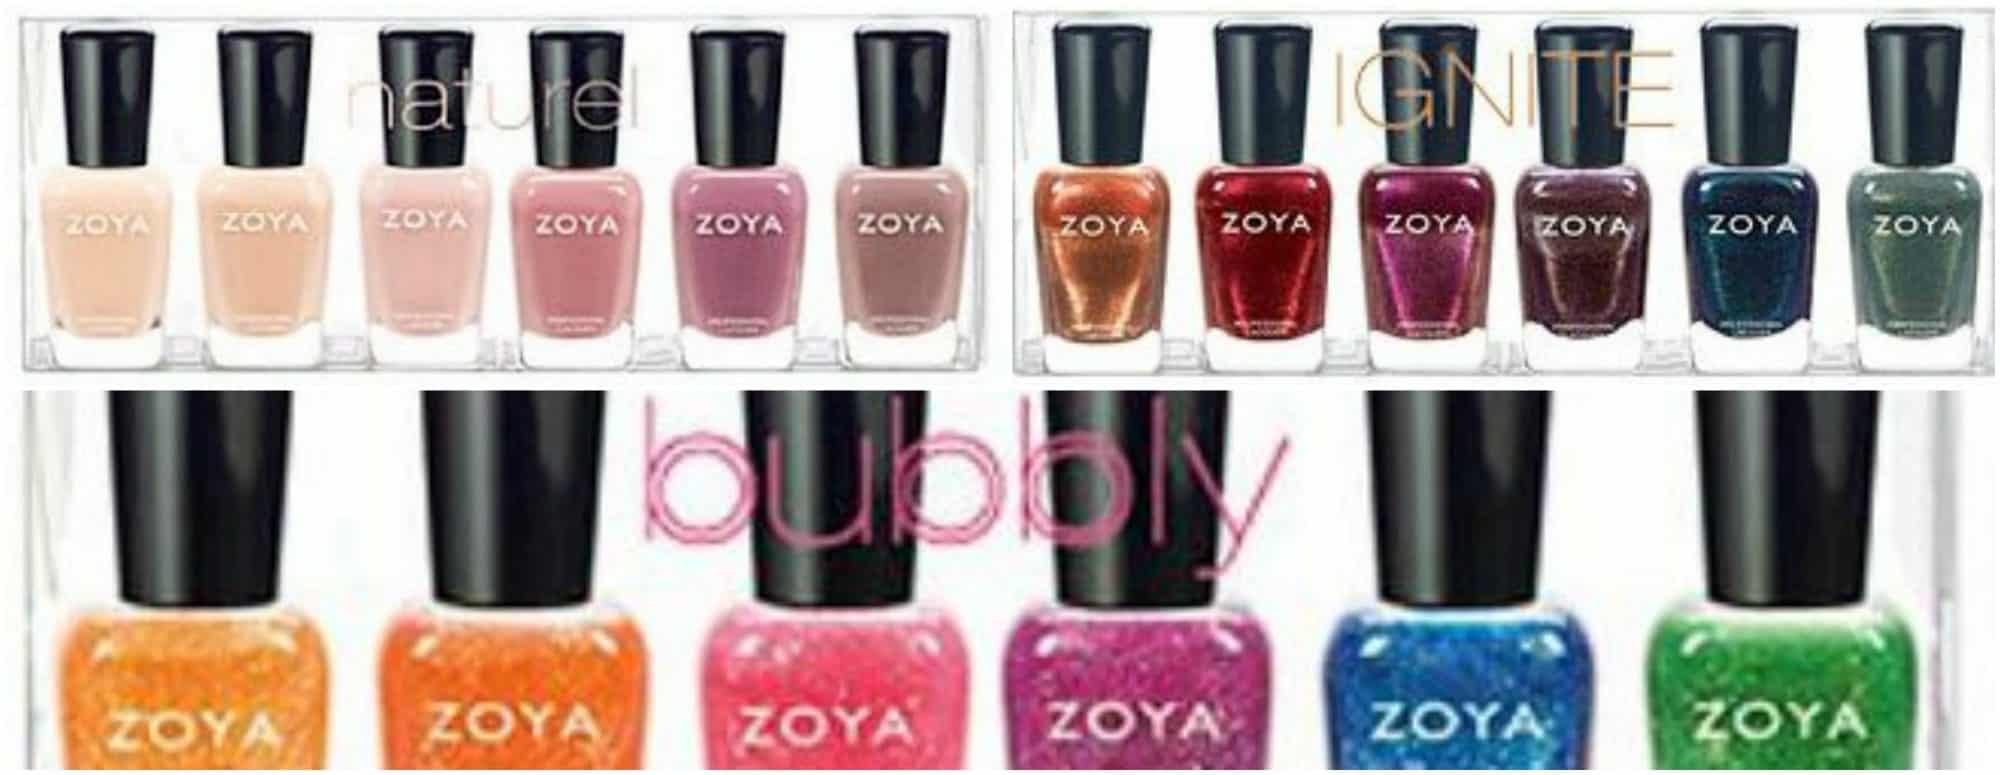 Zoya's new pinks, brights and Zoya's darker colors